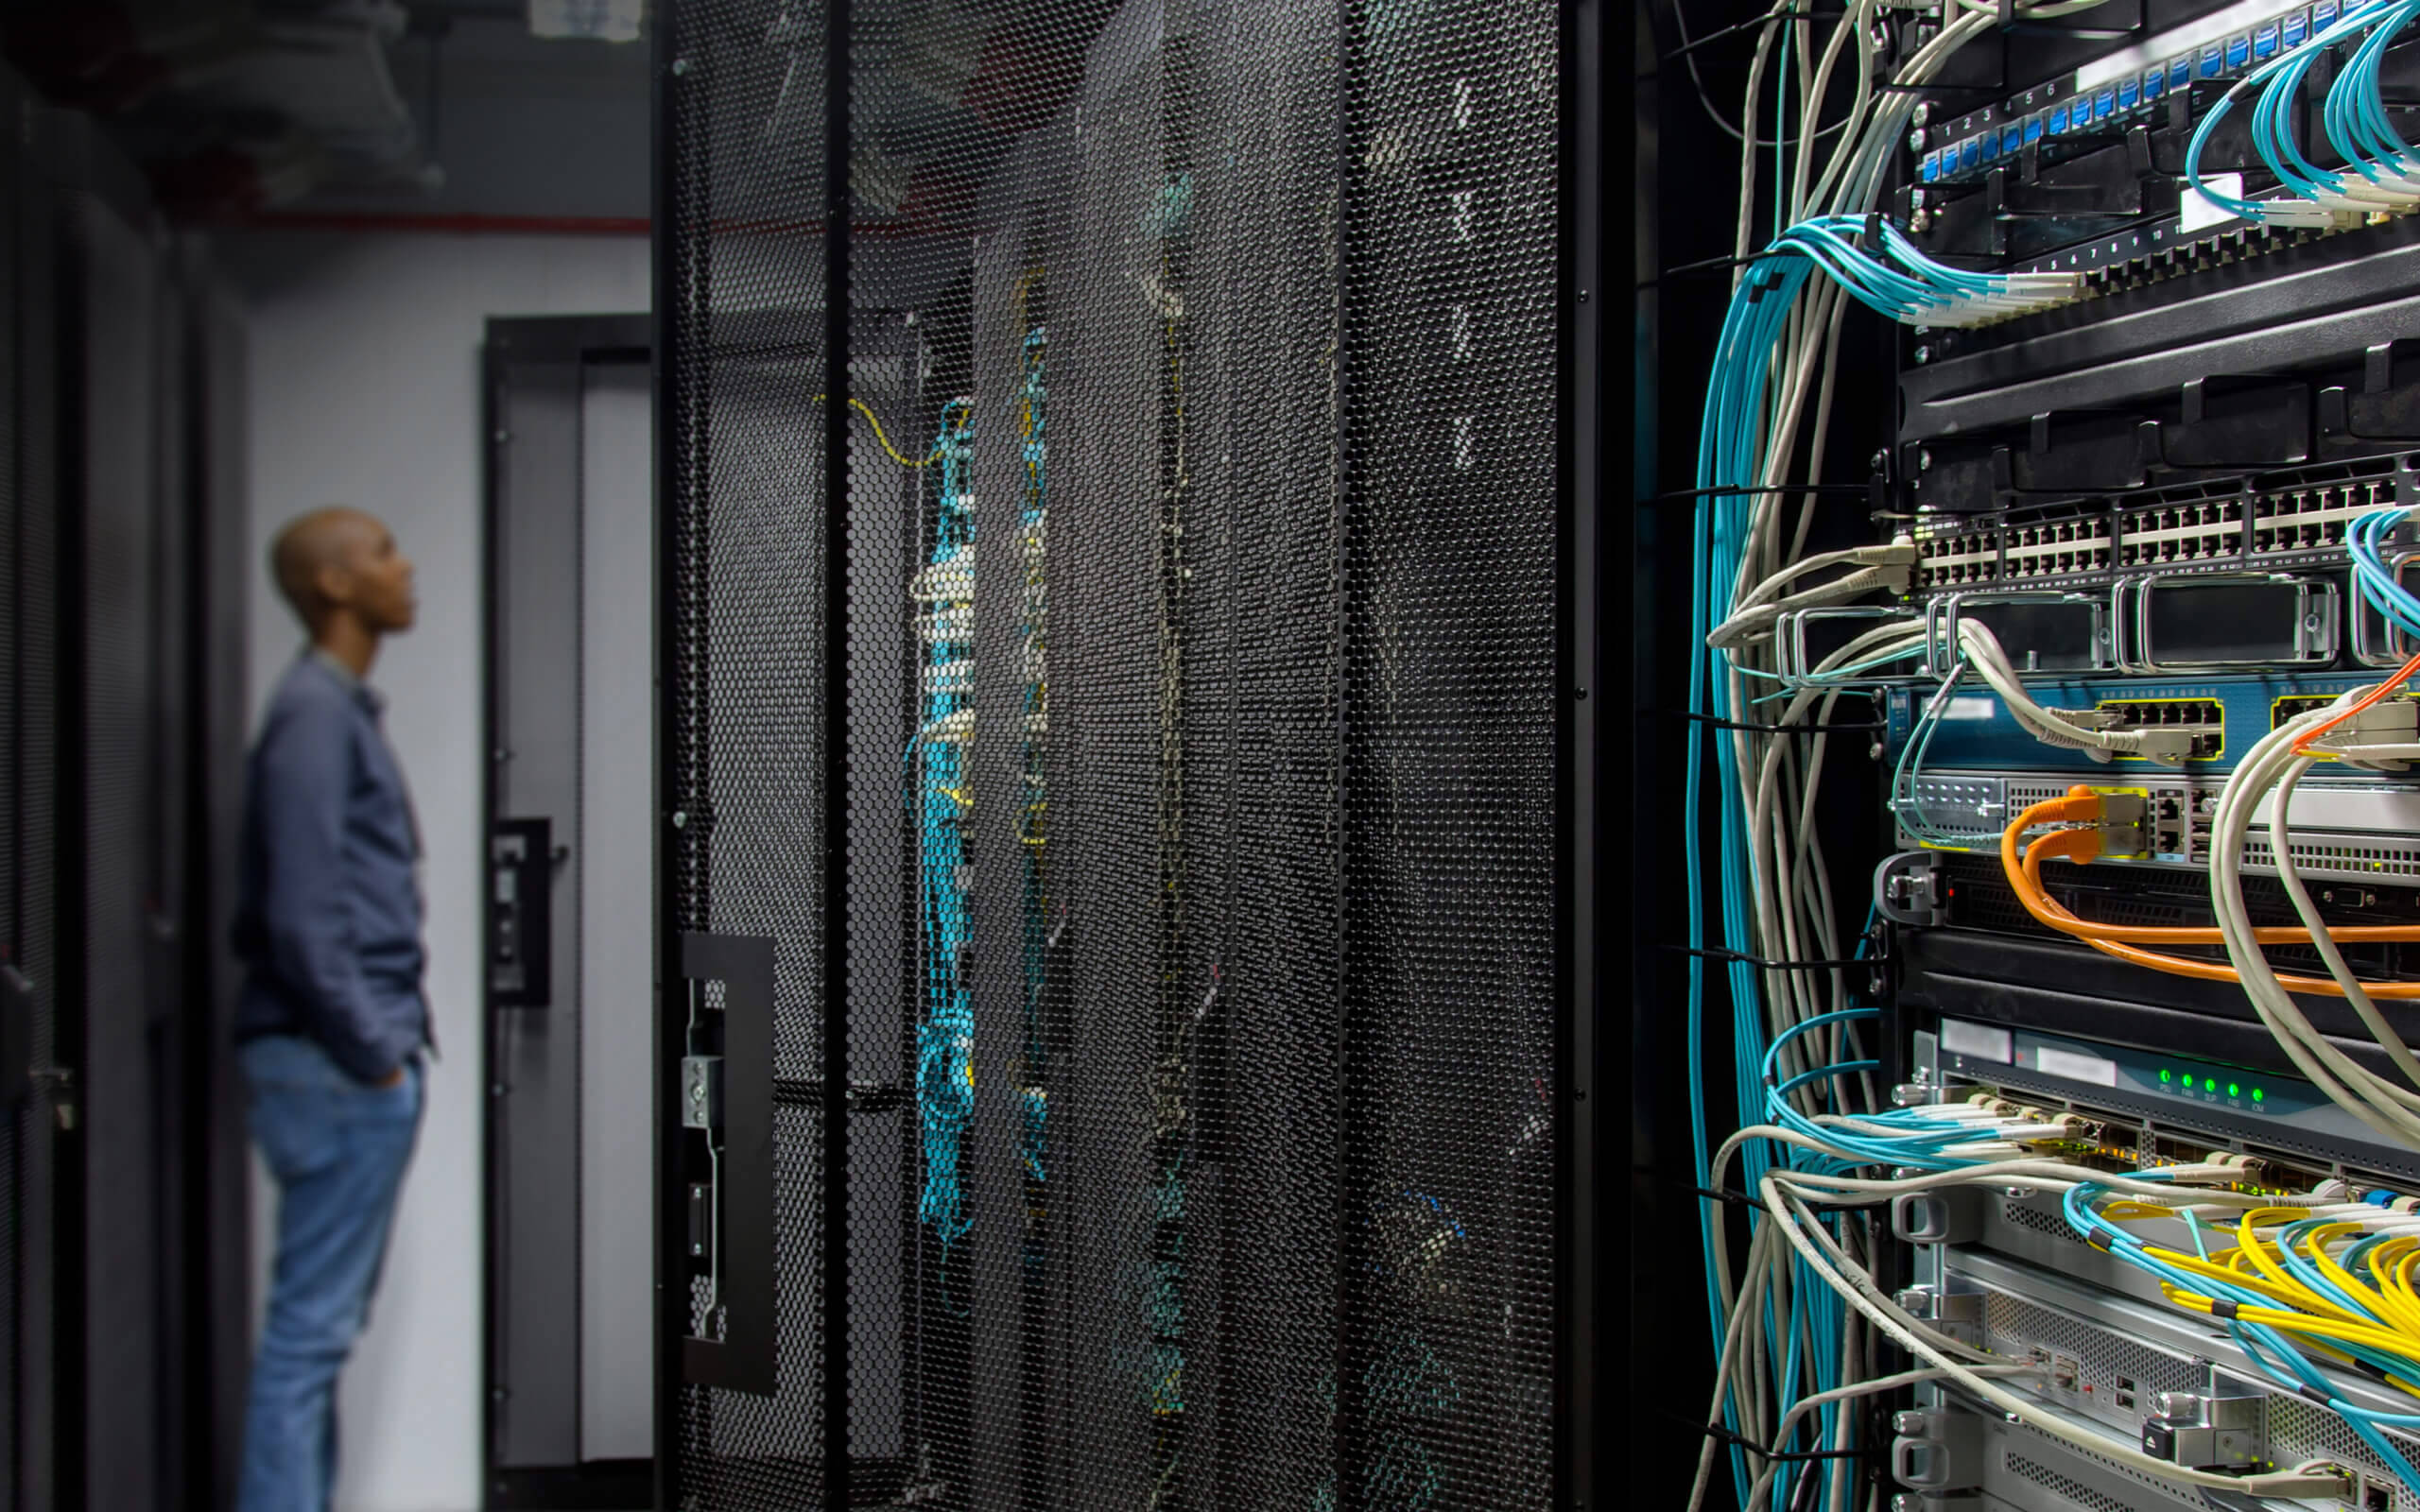 IT Services staff member standing in a Data Centre.